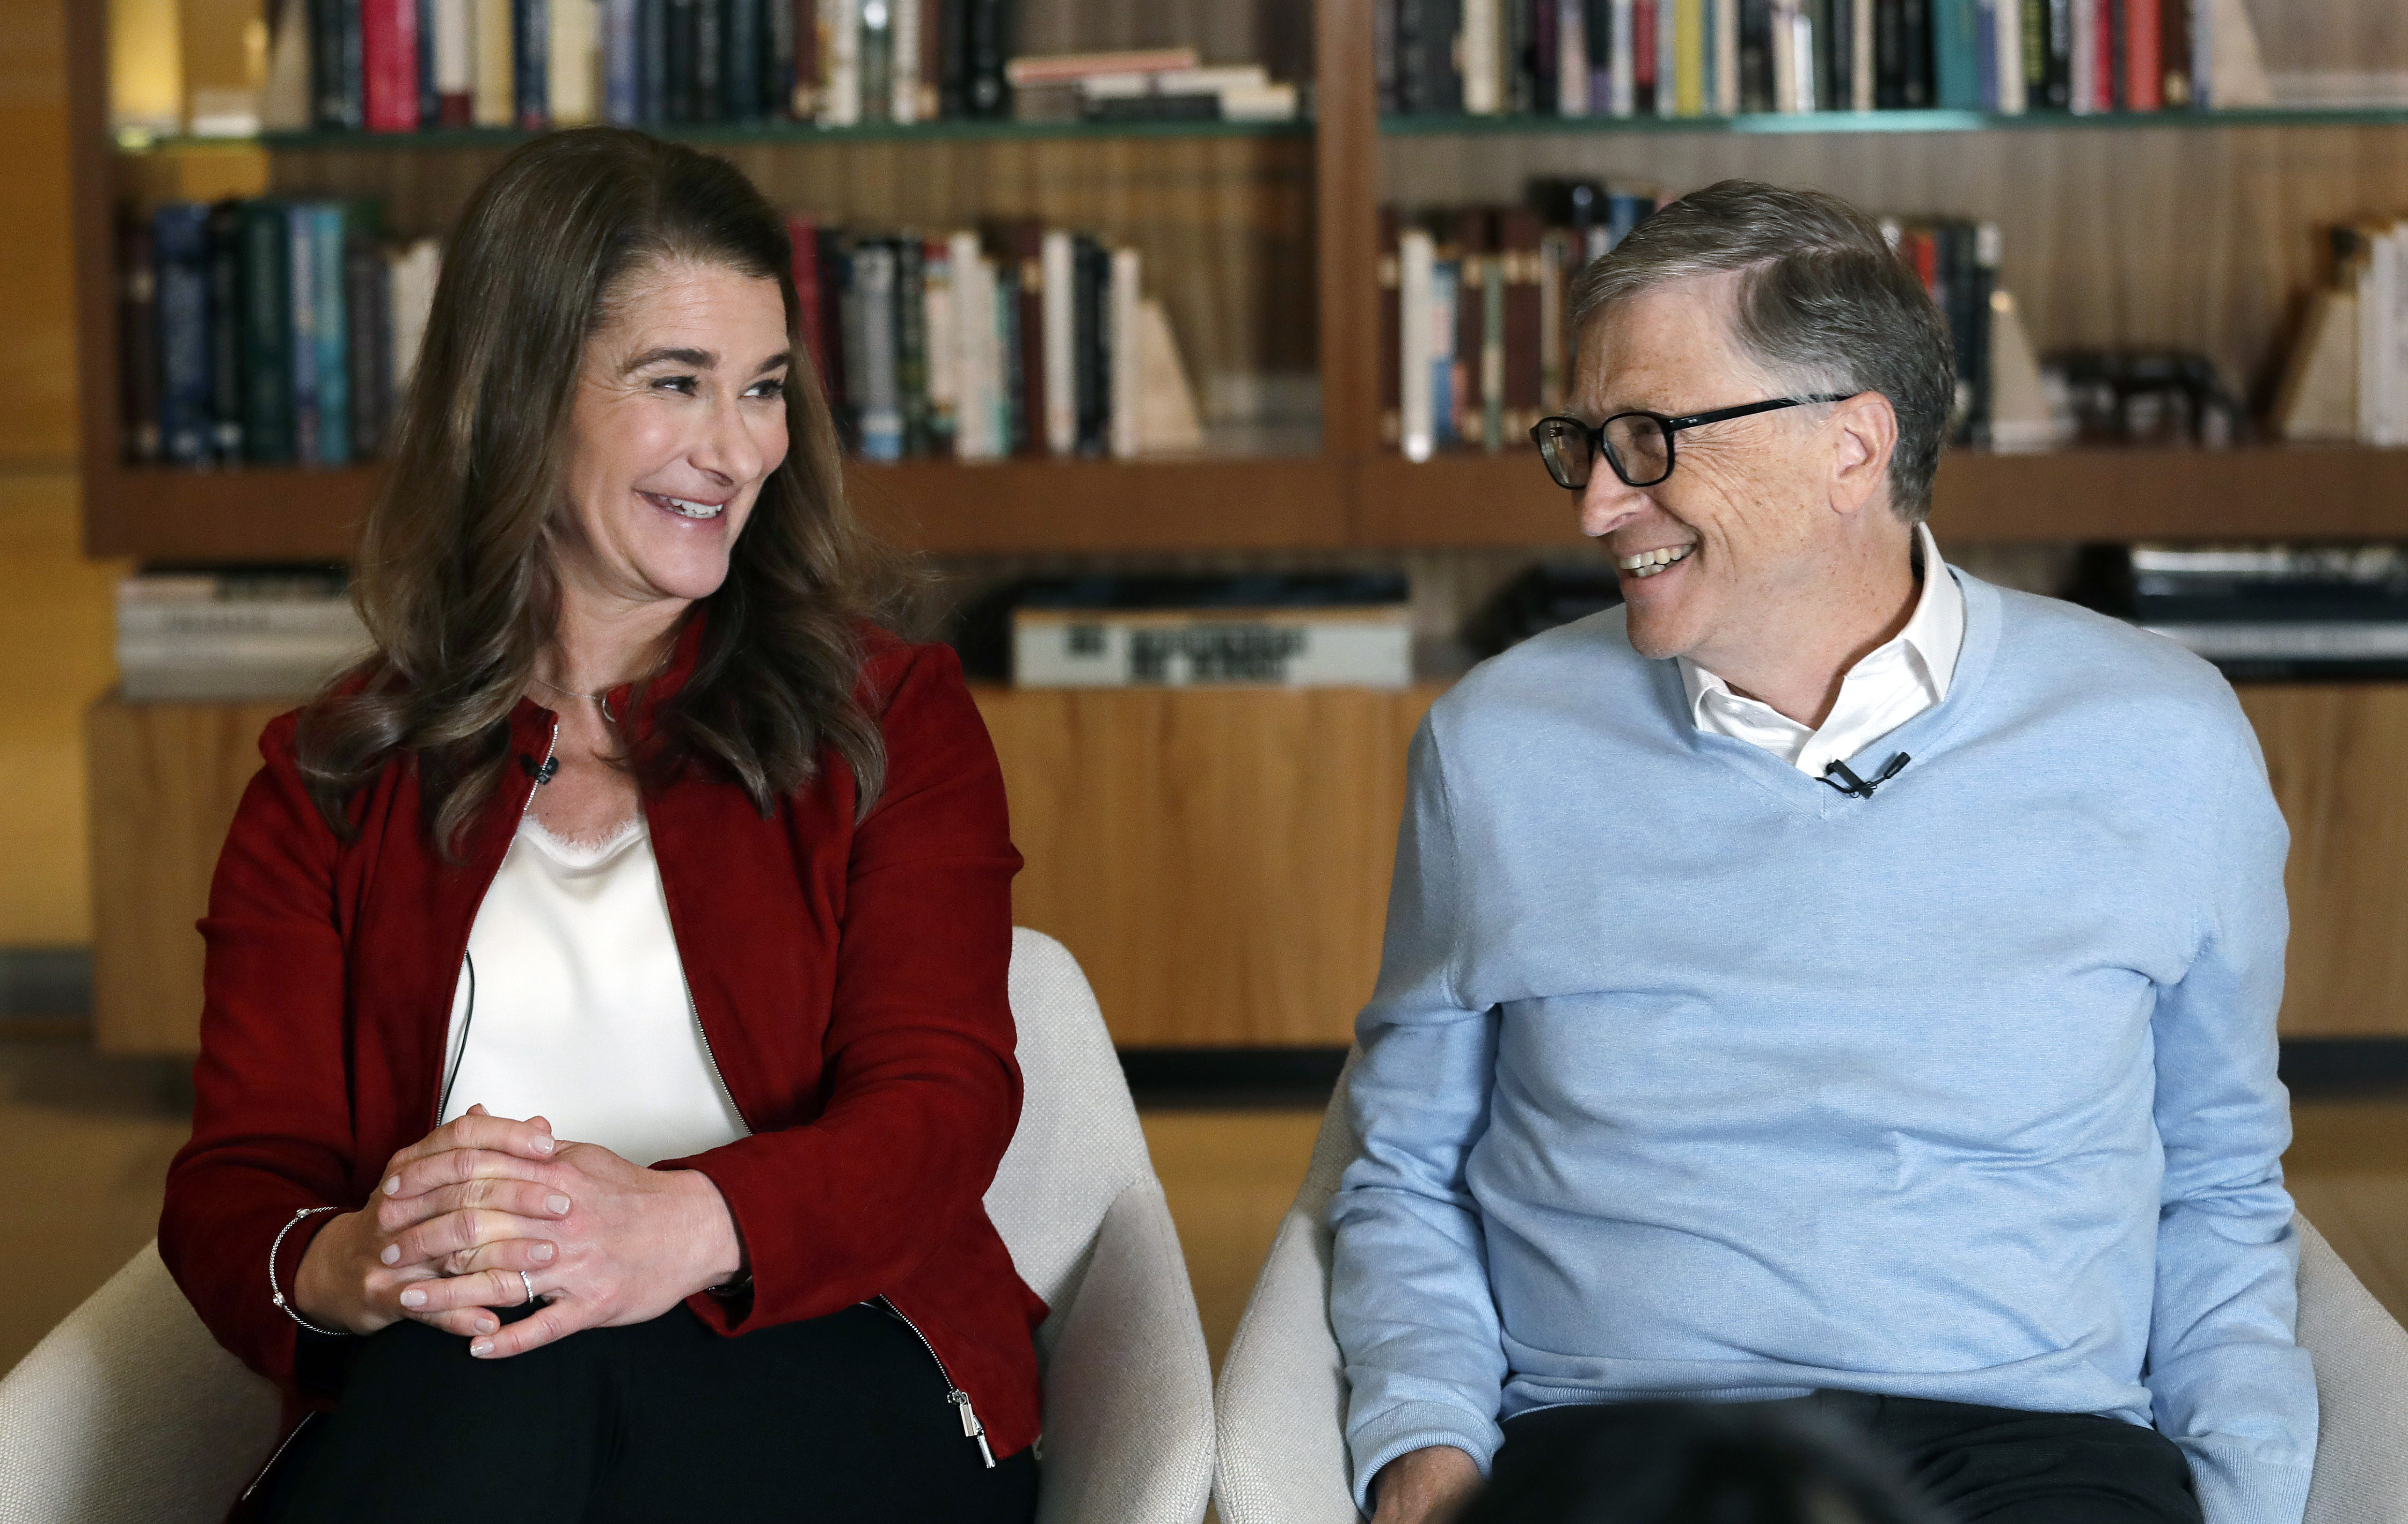 Bill and Melinda Gates smile at each other during an interview in Kirkland, Wash.